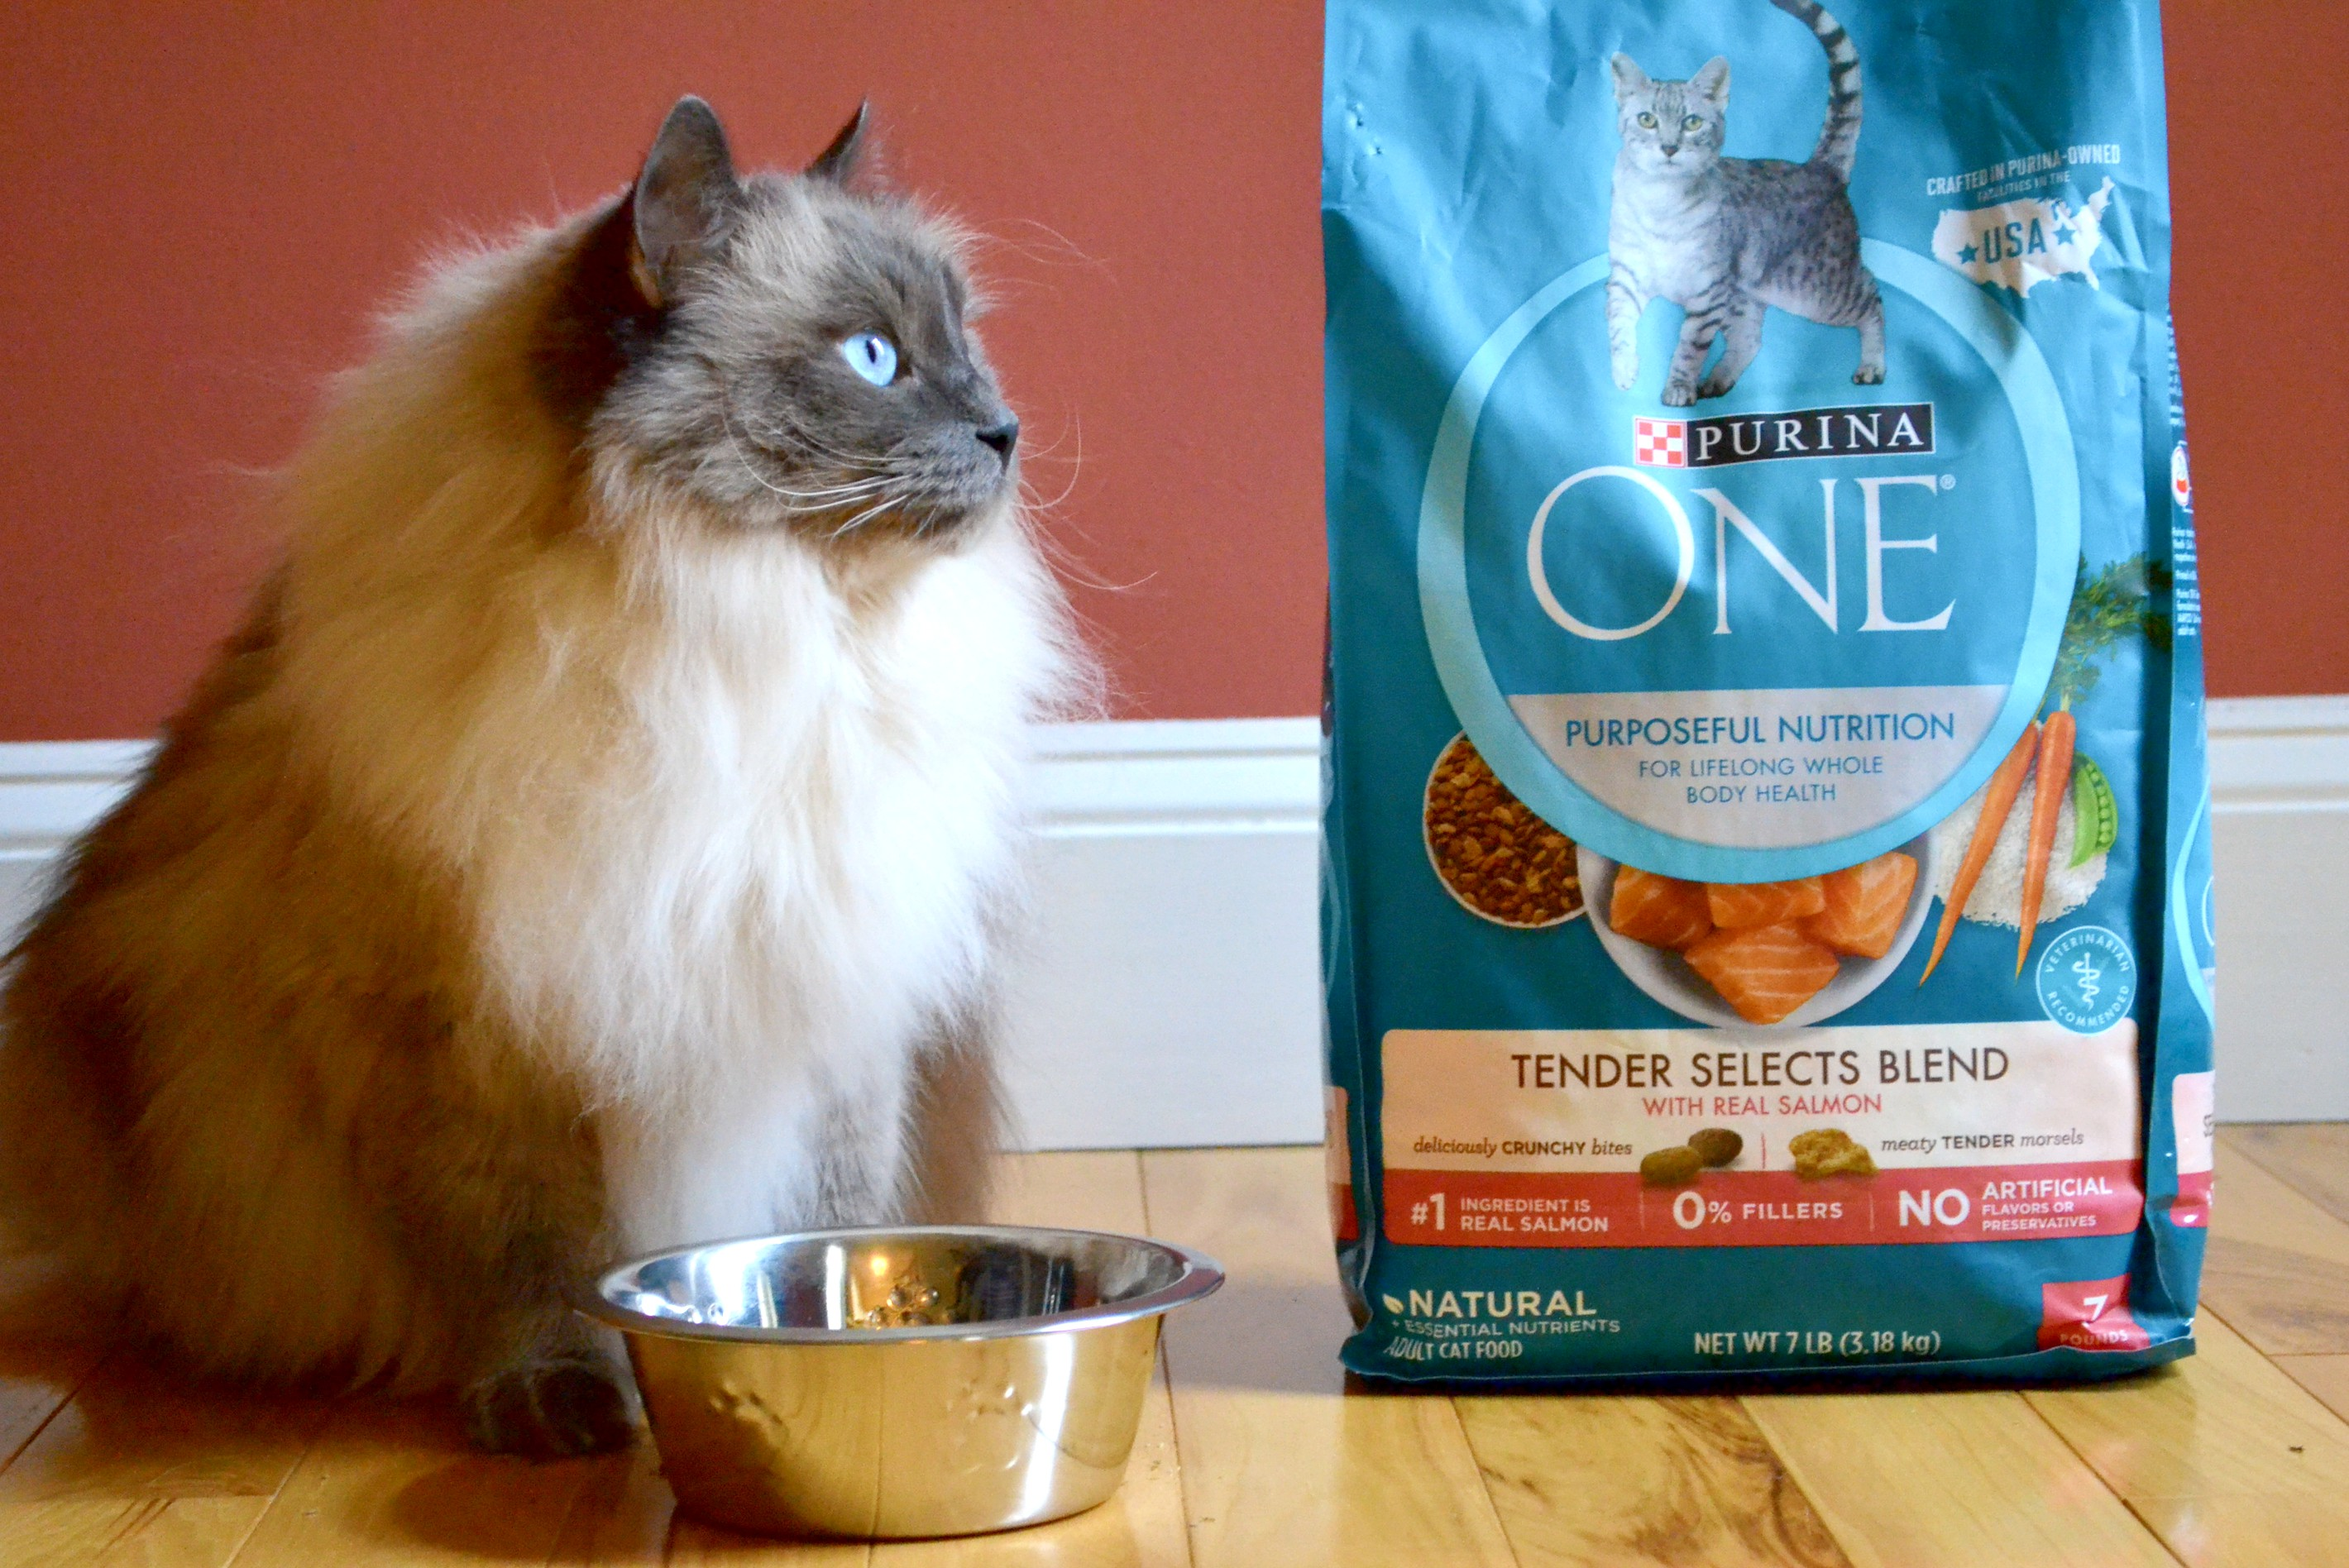 a cat enjoying cat food from Purina ONE